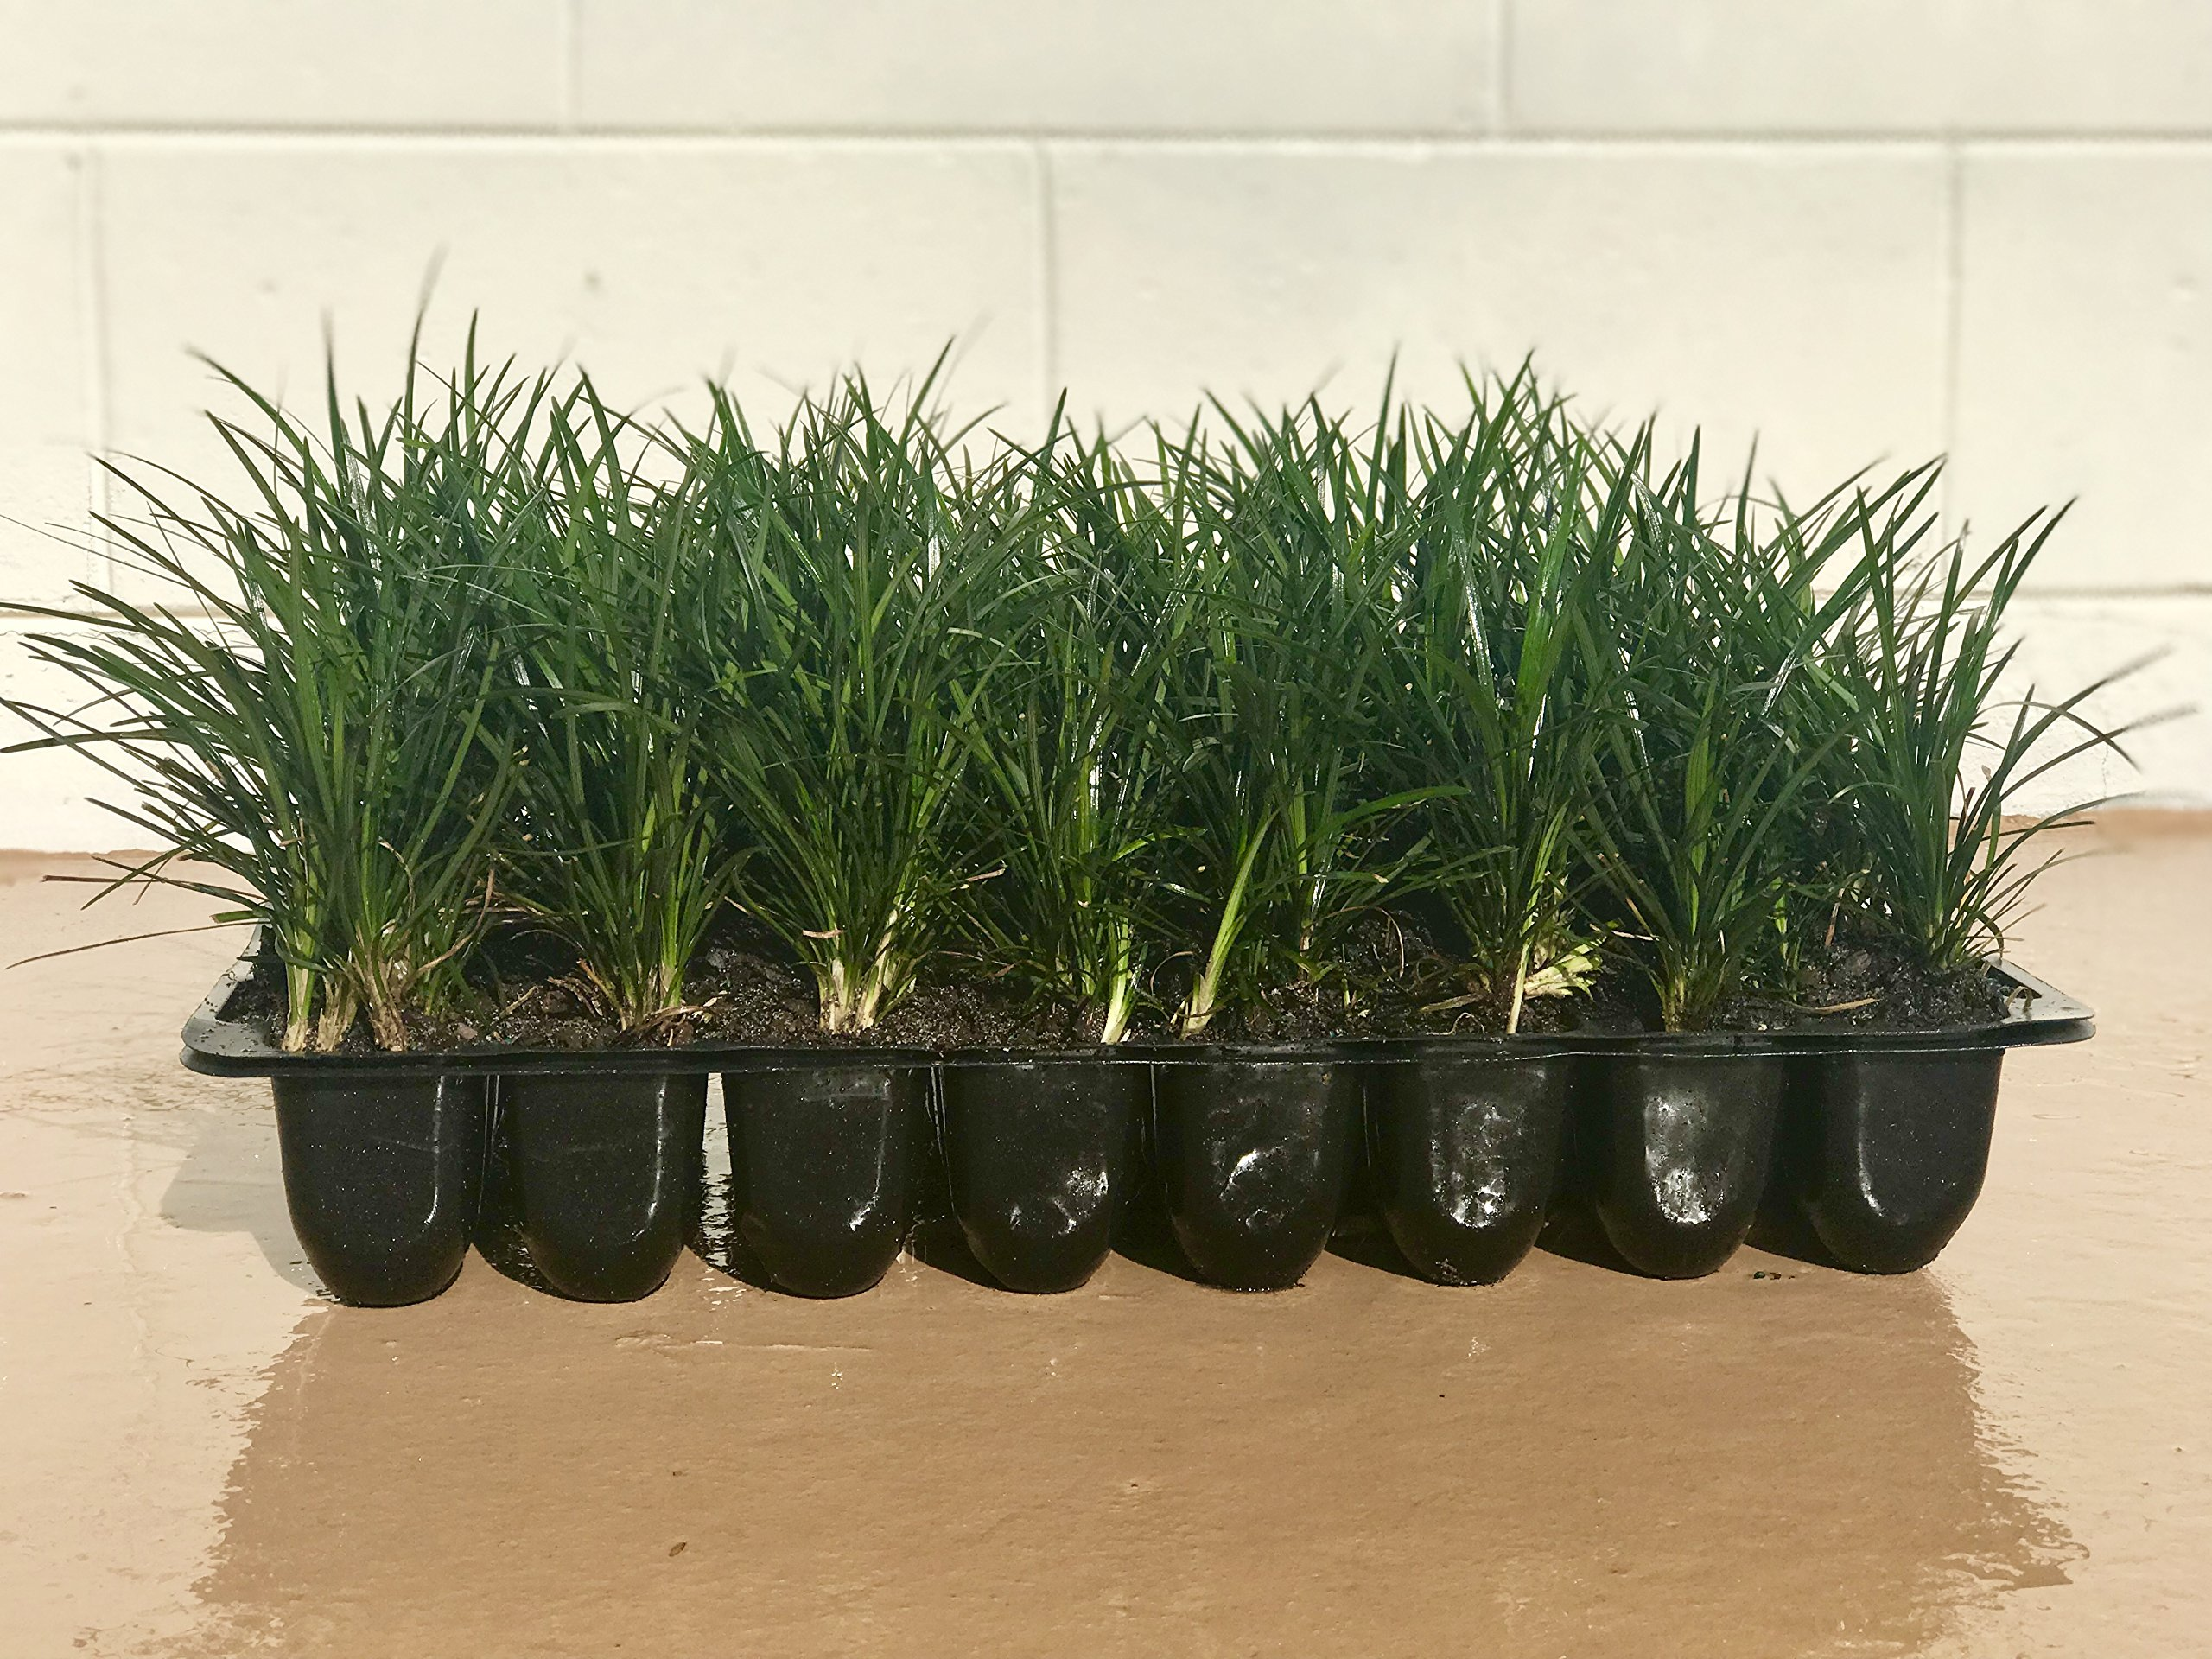 Mondo Grass - 20 Live Plants - Ophiopogon Japonicus - Shade Loving Evergreen Groundcover